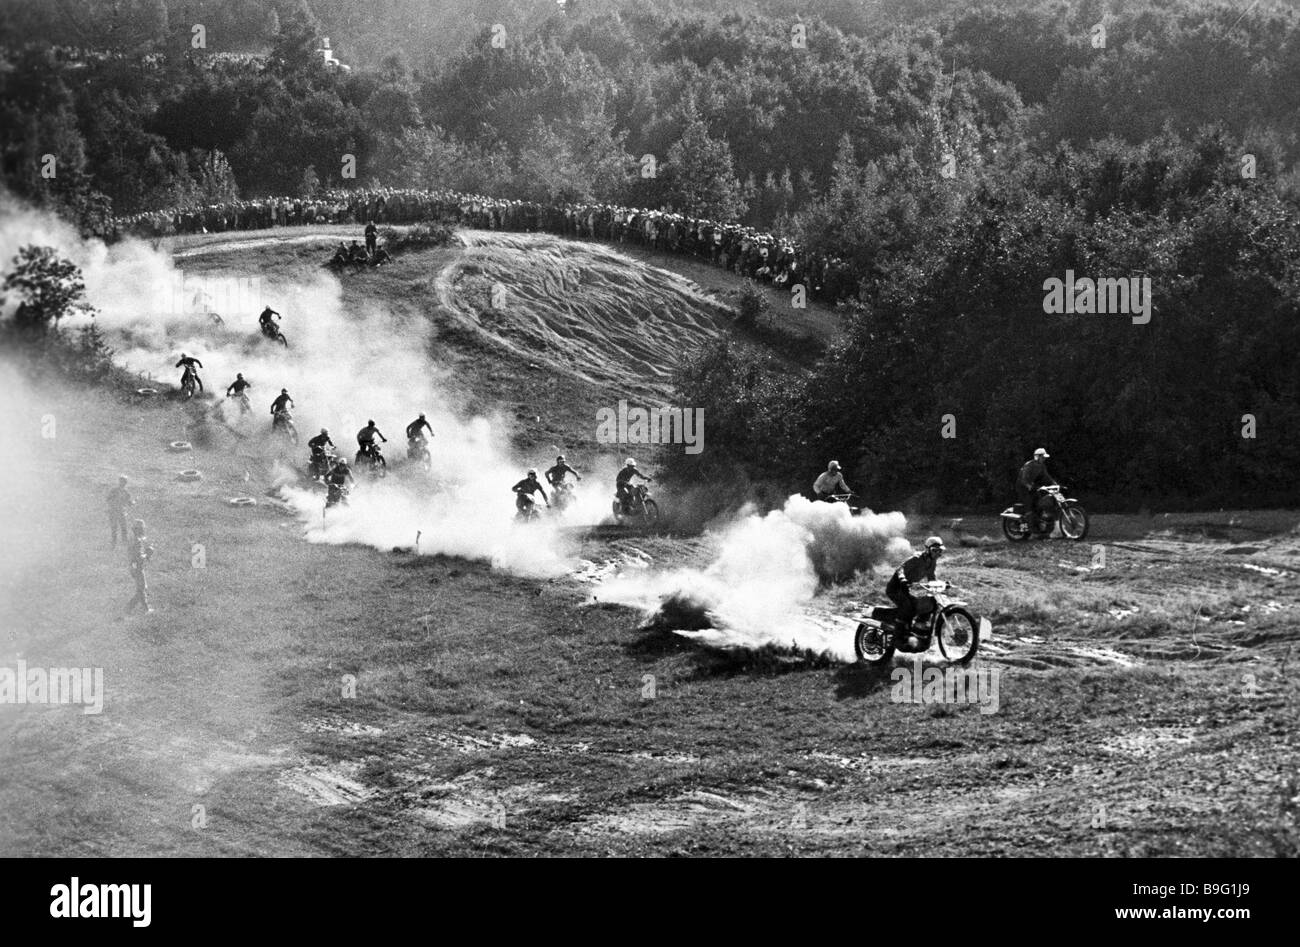 Racers on a leg of the international scramble in Yukka Stock Photo